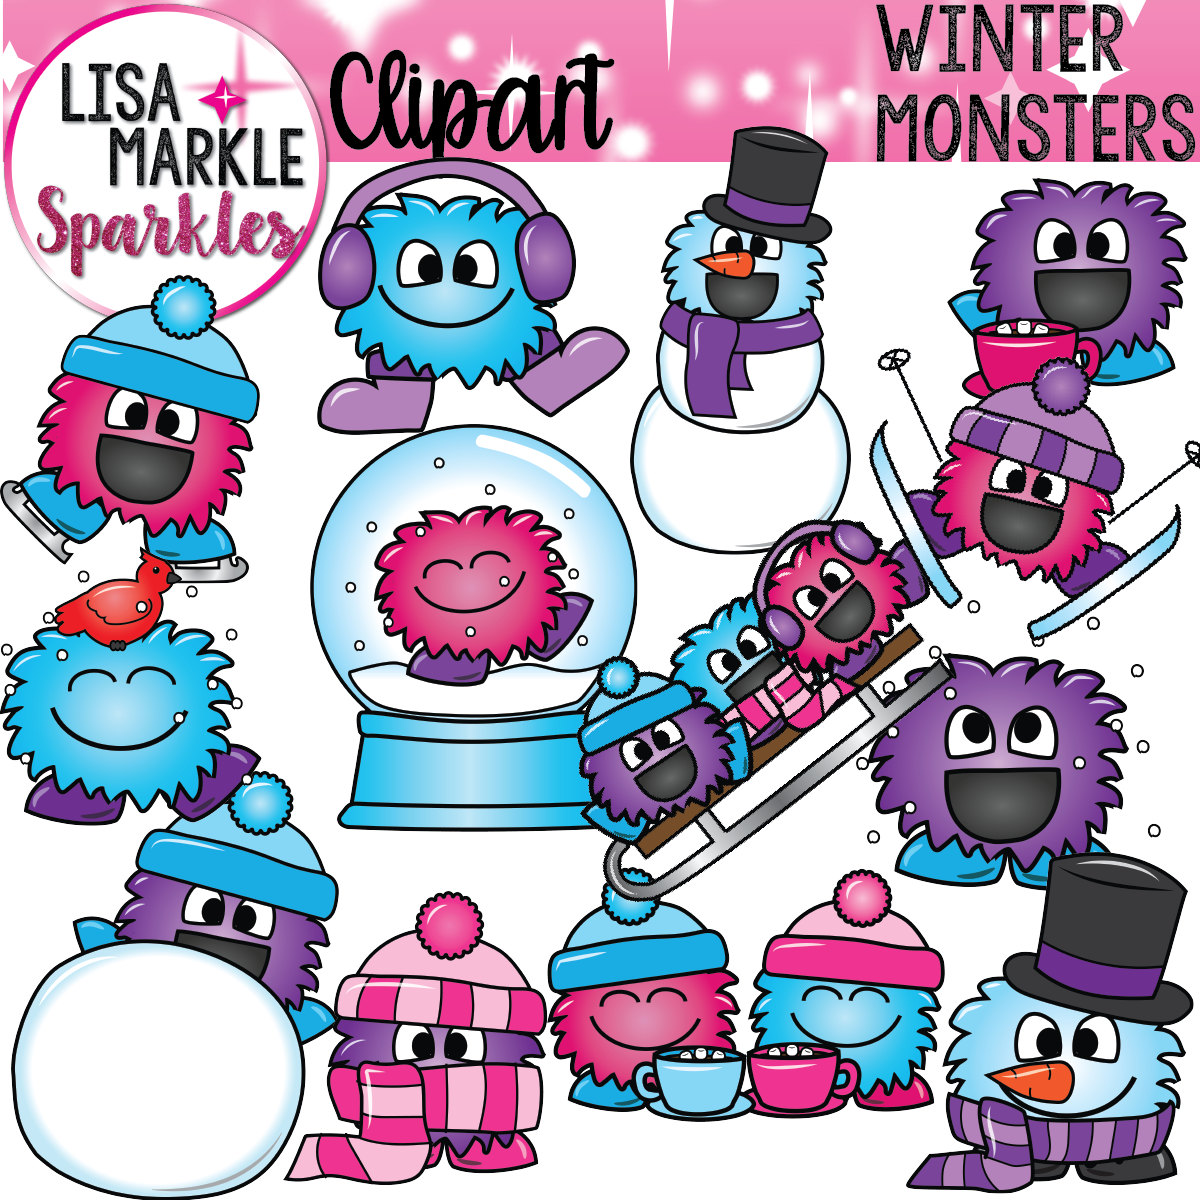 Snowman clipart monster Scarves Monsters Snowglobes Hats Winter